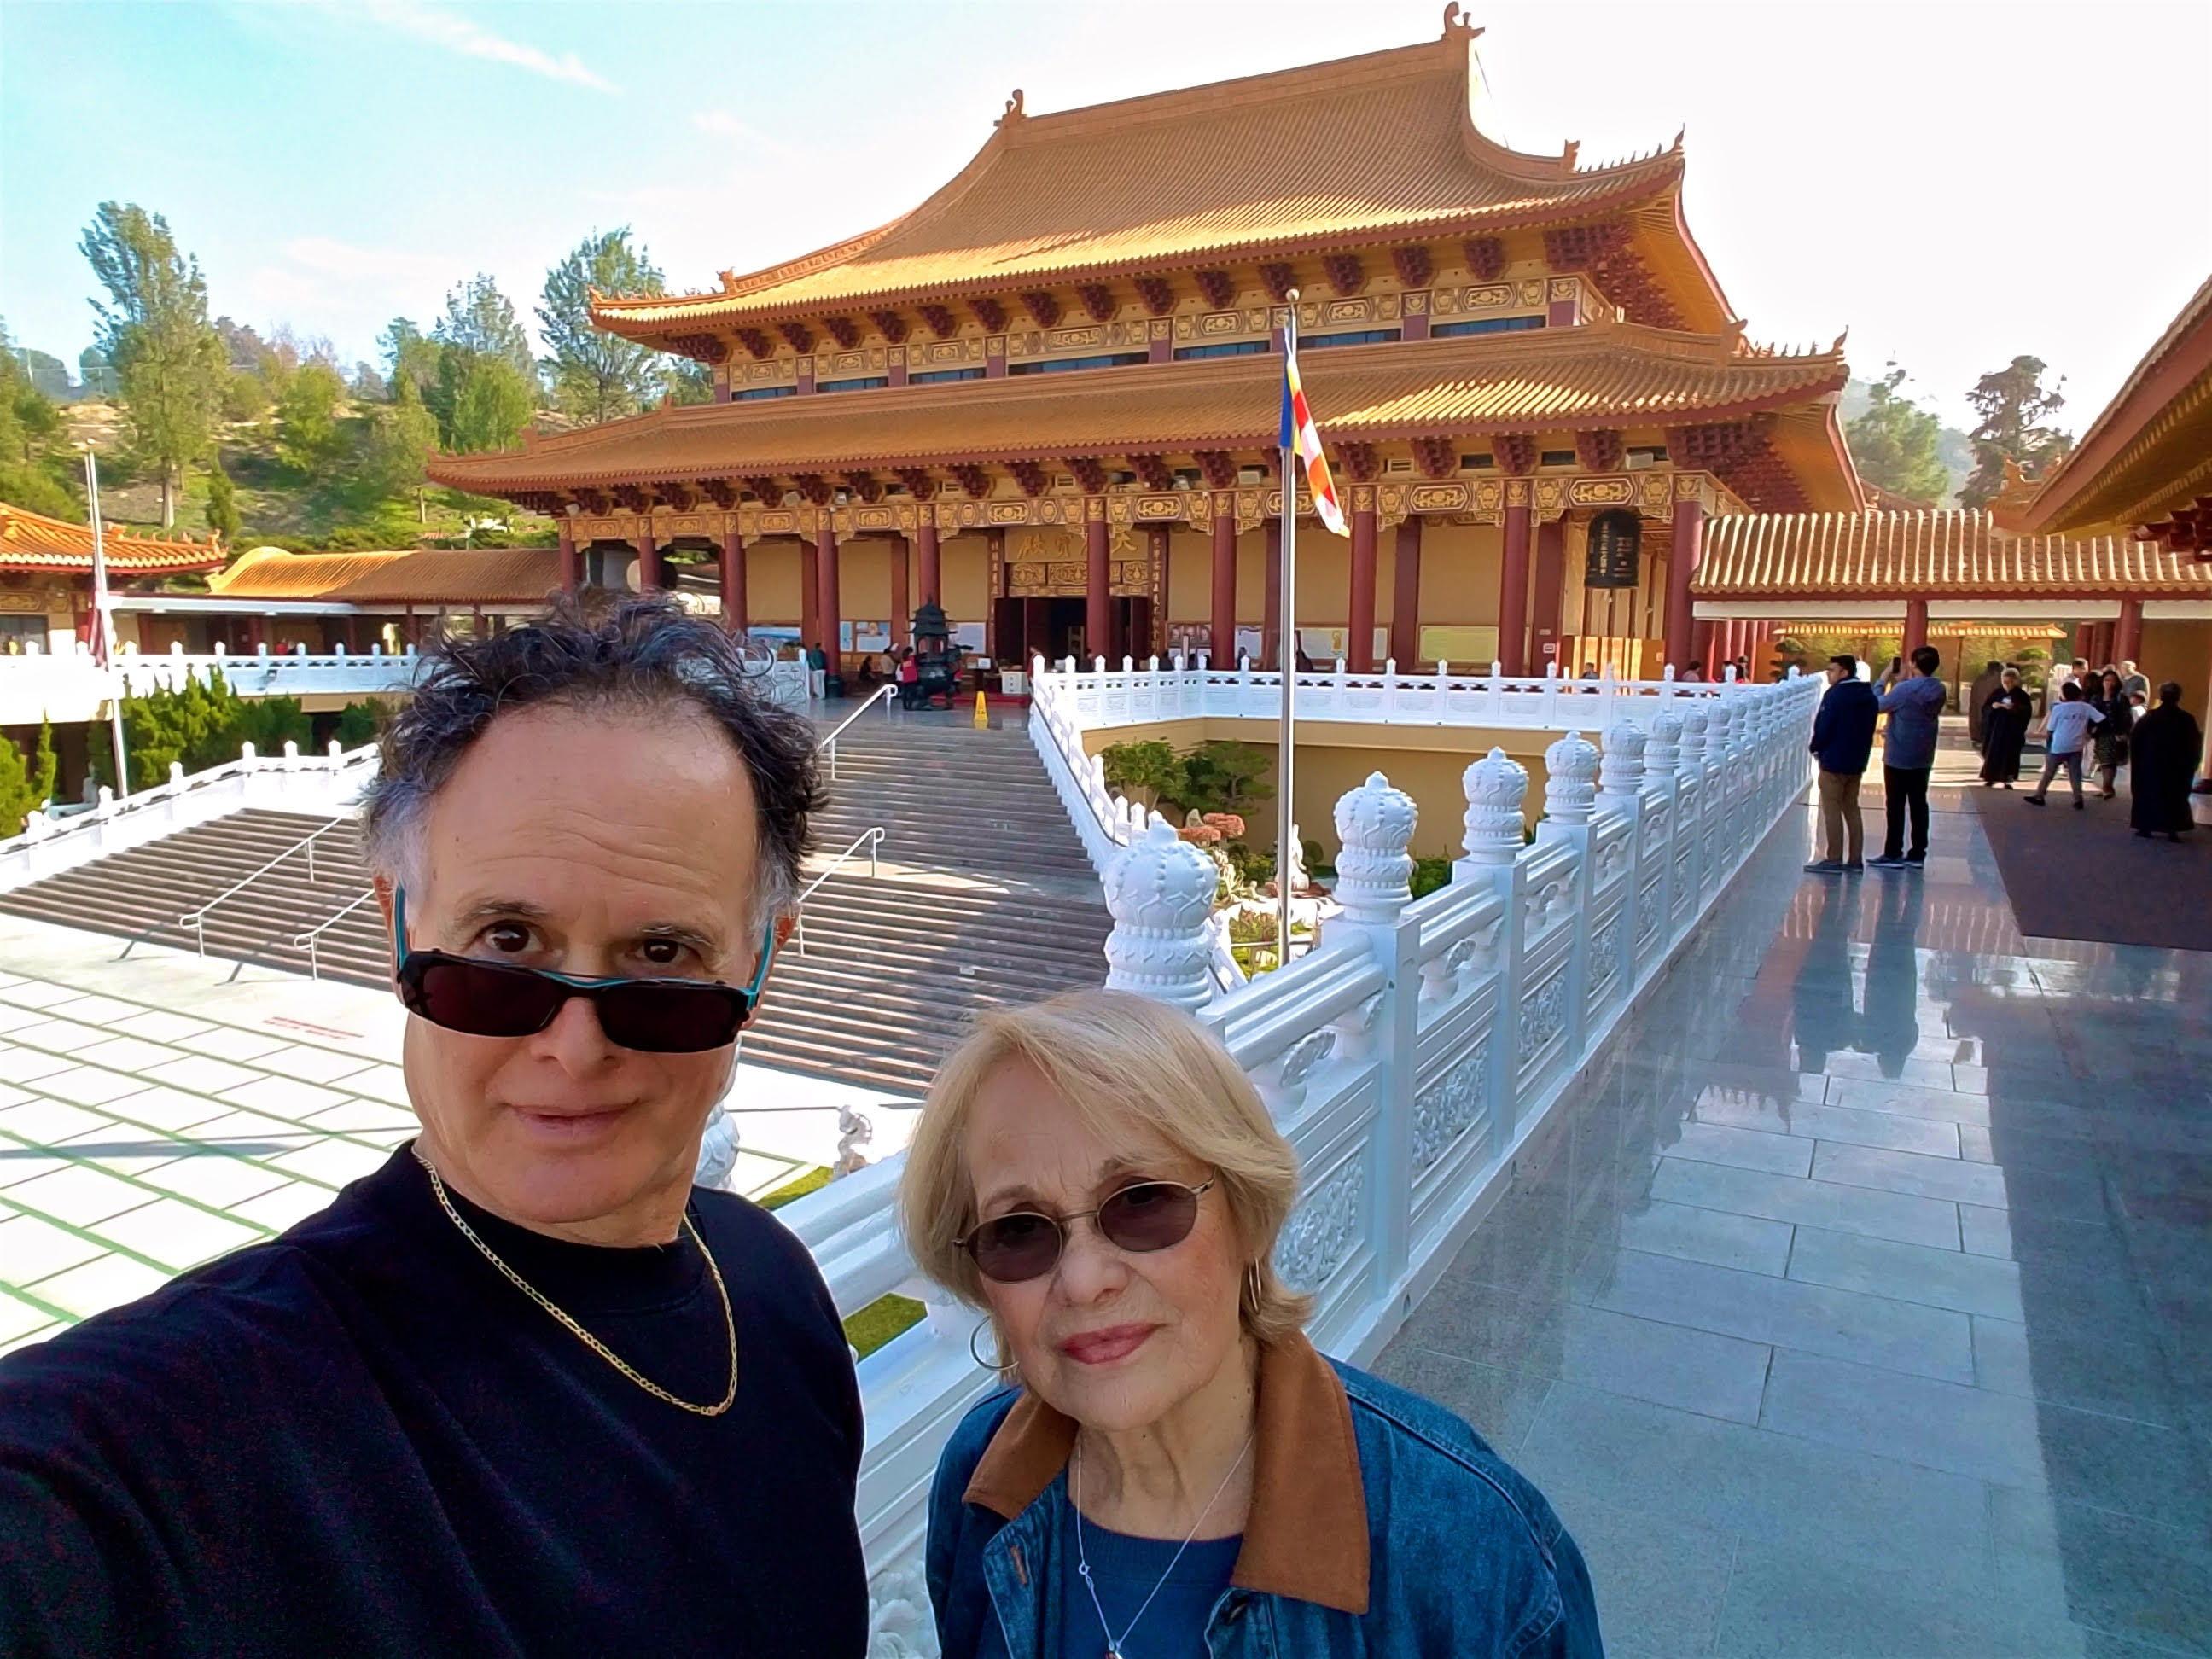 Rolando Morales, guitarist and vocalist, and his beautiful mom enjoying Xmas time at Guang Shan Hsi Lai Temple